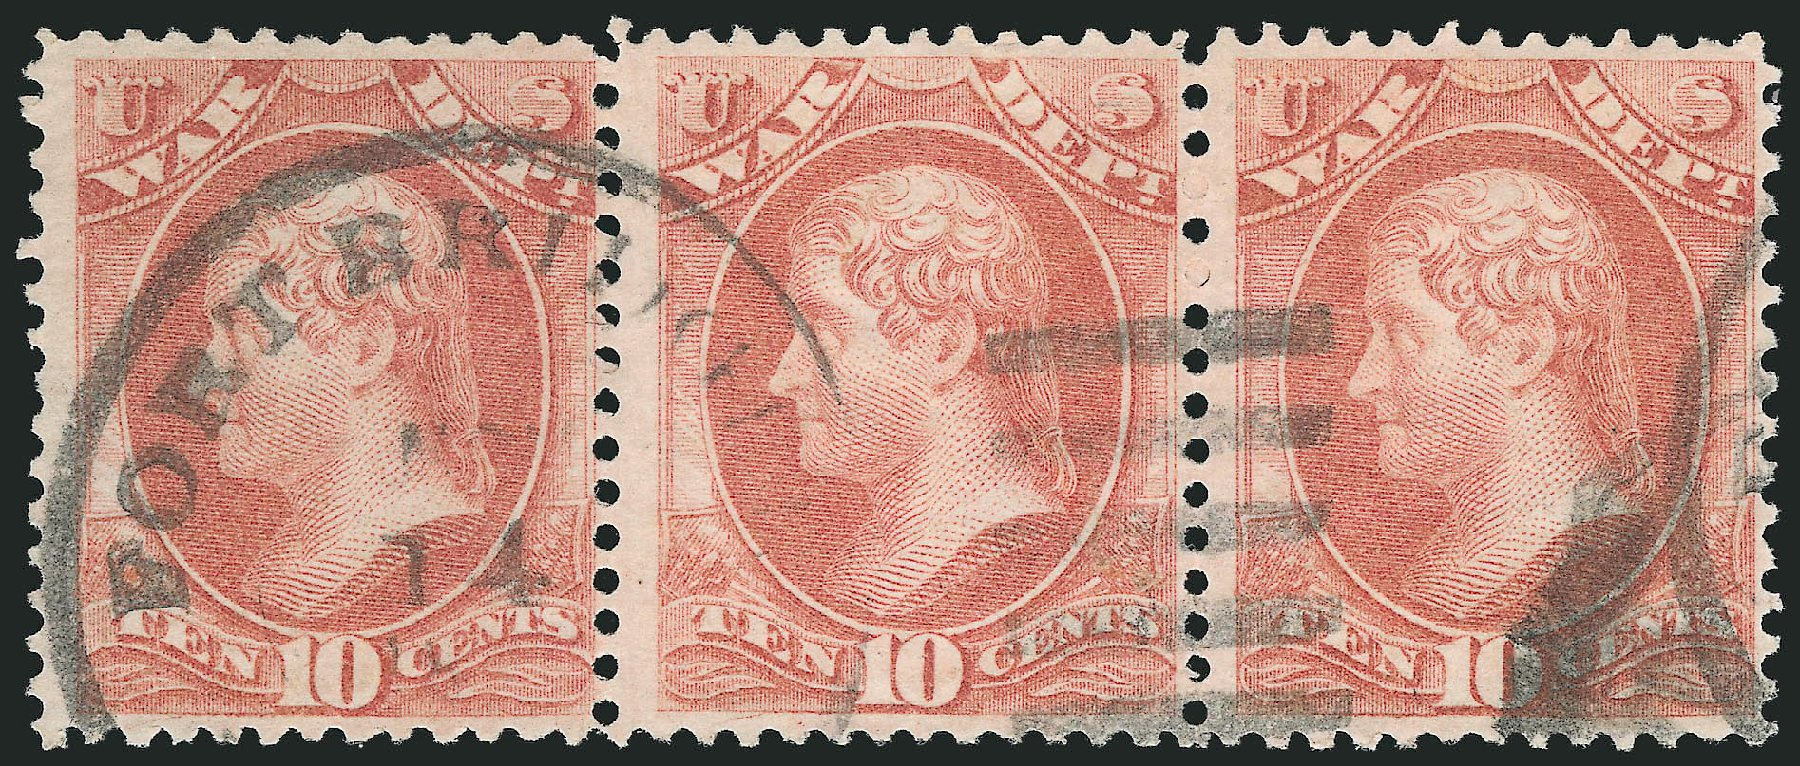 Costs of US Stamps Scott Catalog O88 - 10c 1873 War Official. Robert Siegel Auction Galleries, Nov 2014, Sale 1085, Lot 4163